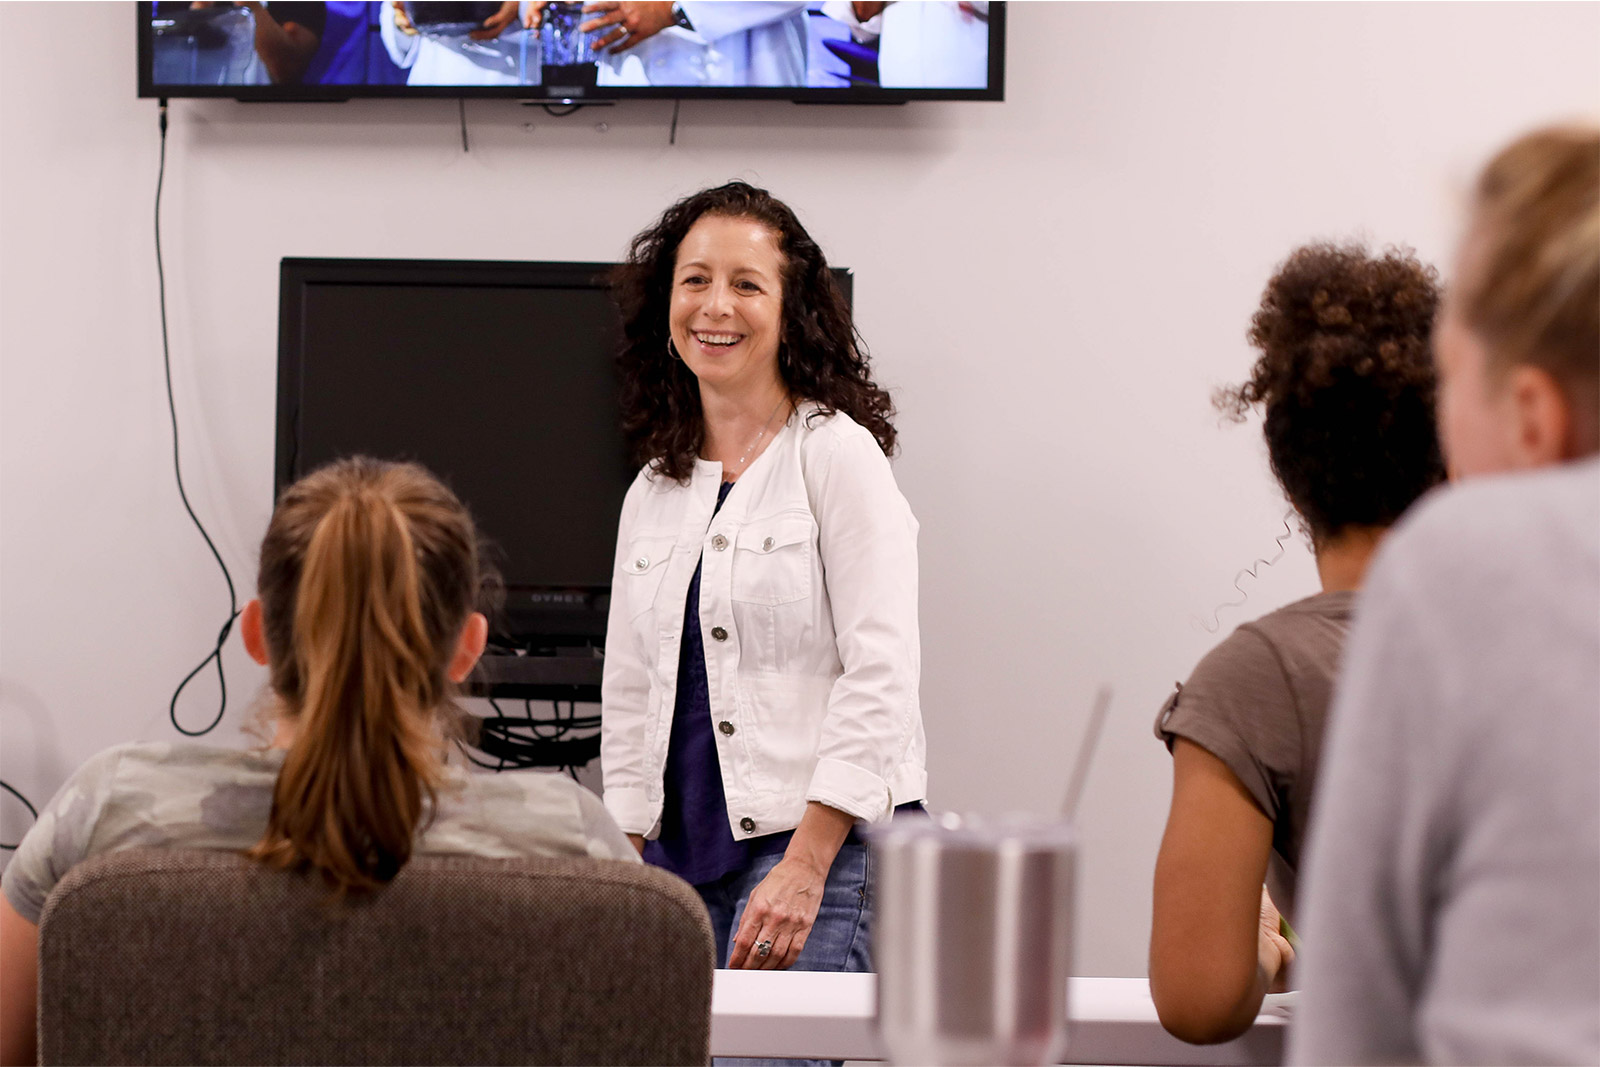 LCC CLASSES - LCC Classes are a great option to